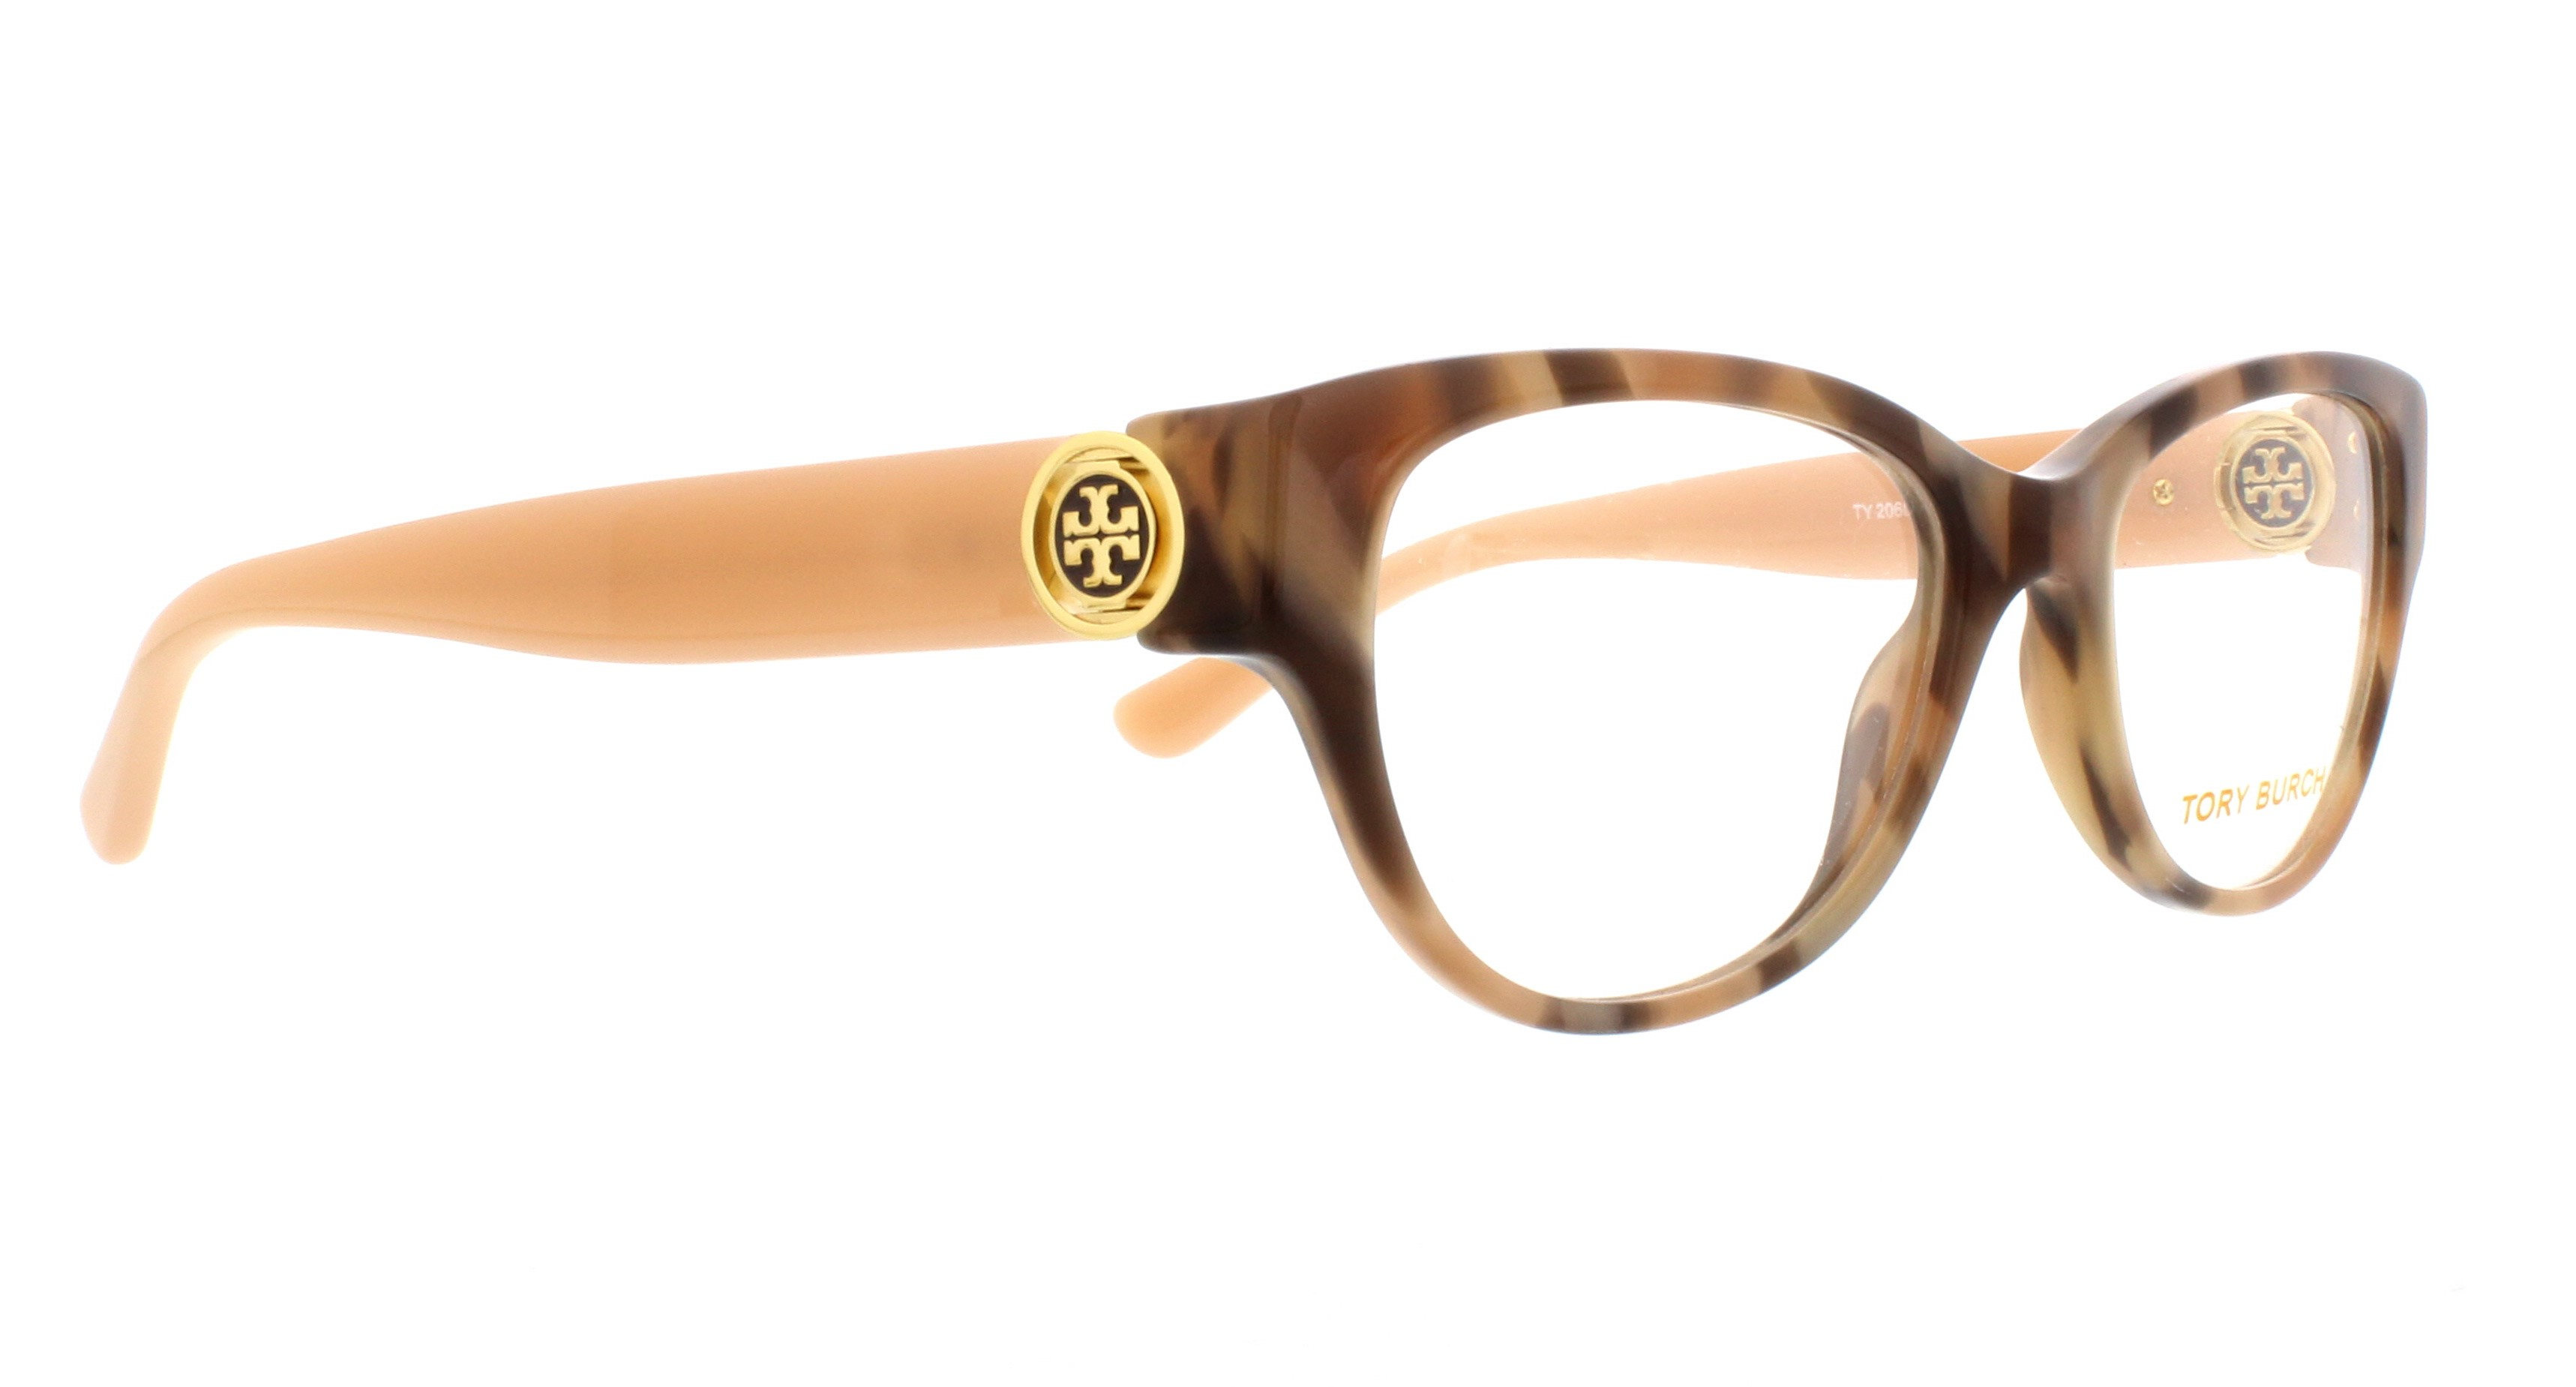 eb80b9c701 Designer Frames Outlet. Tory Burch TY2060